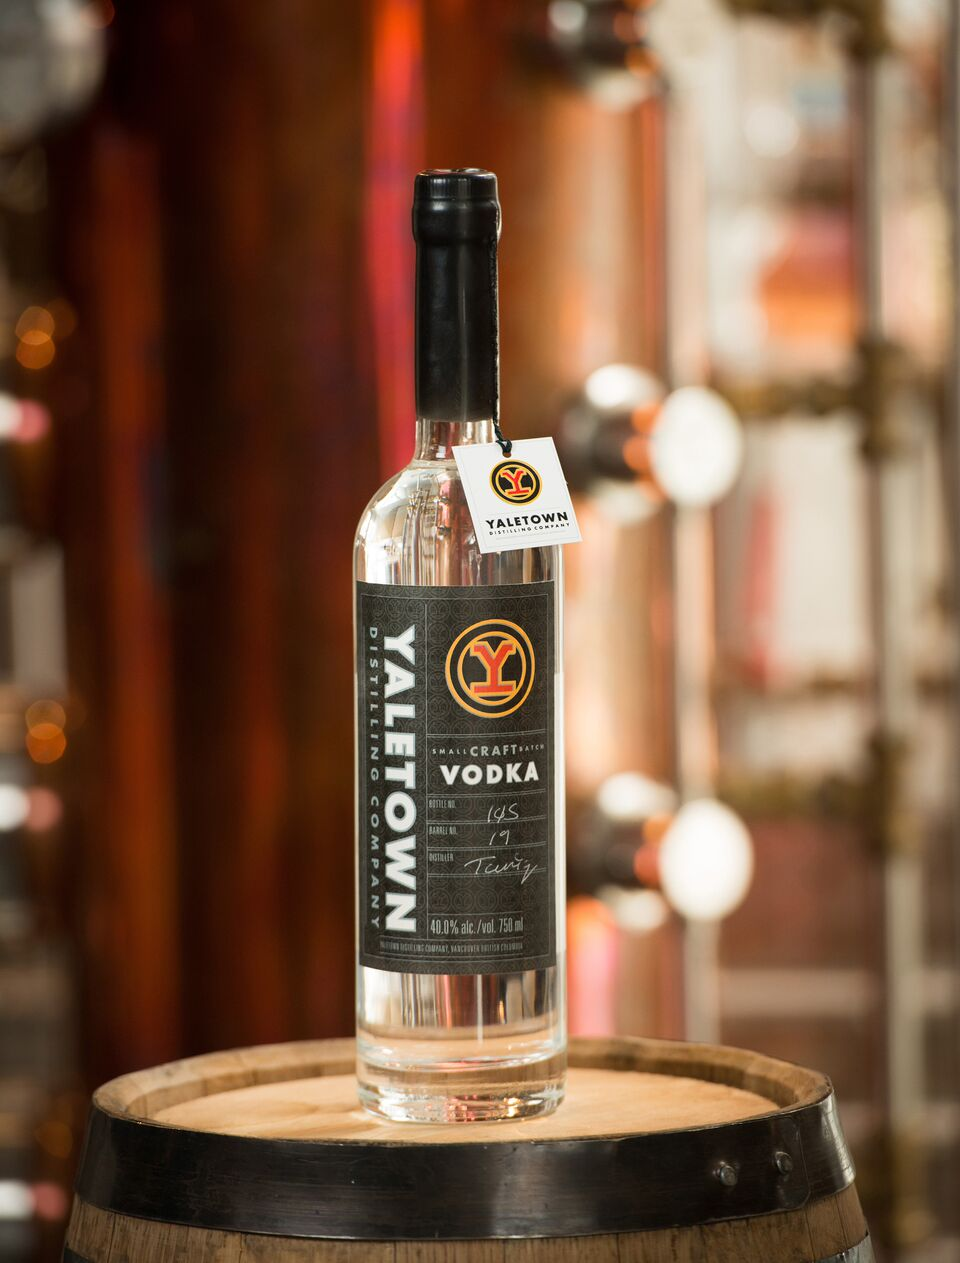 Yaletown Vodka